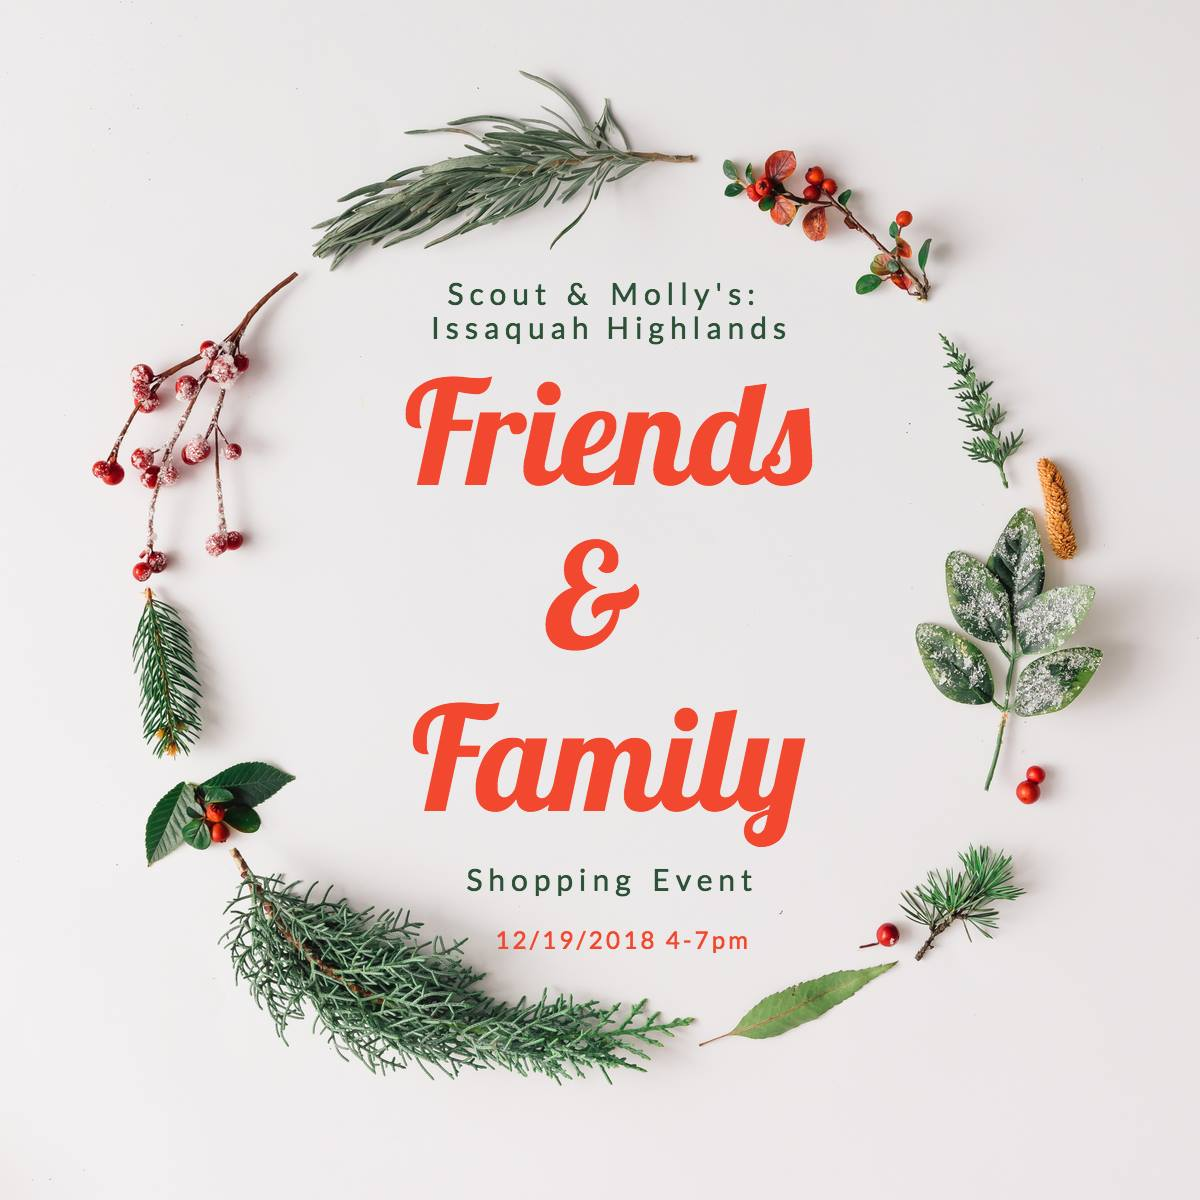 Friends & Family Event: 25% off your purchase plus free gift!